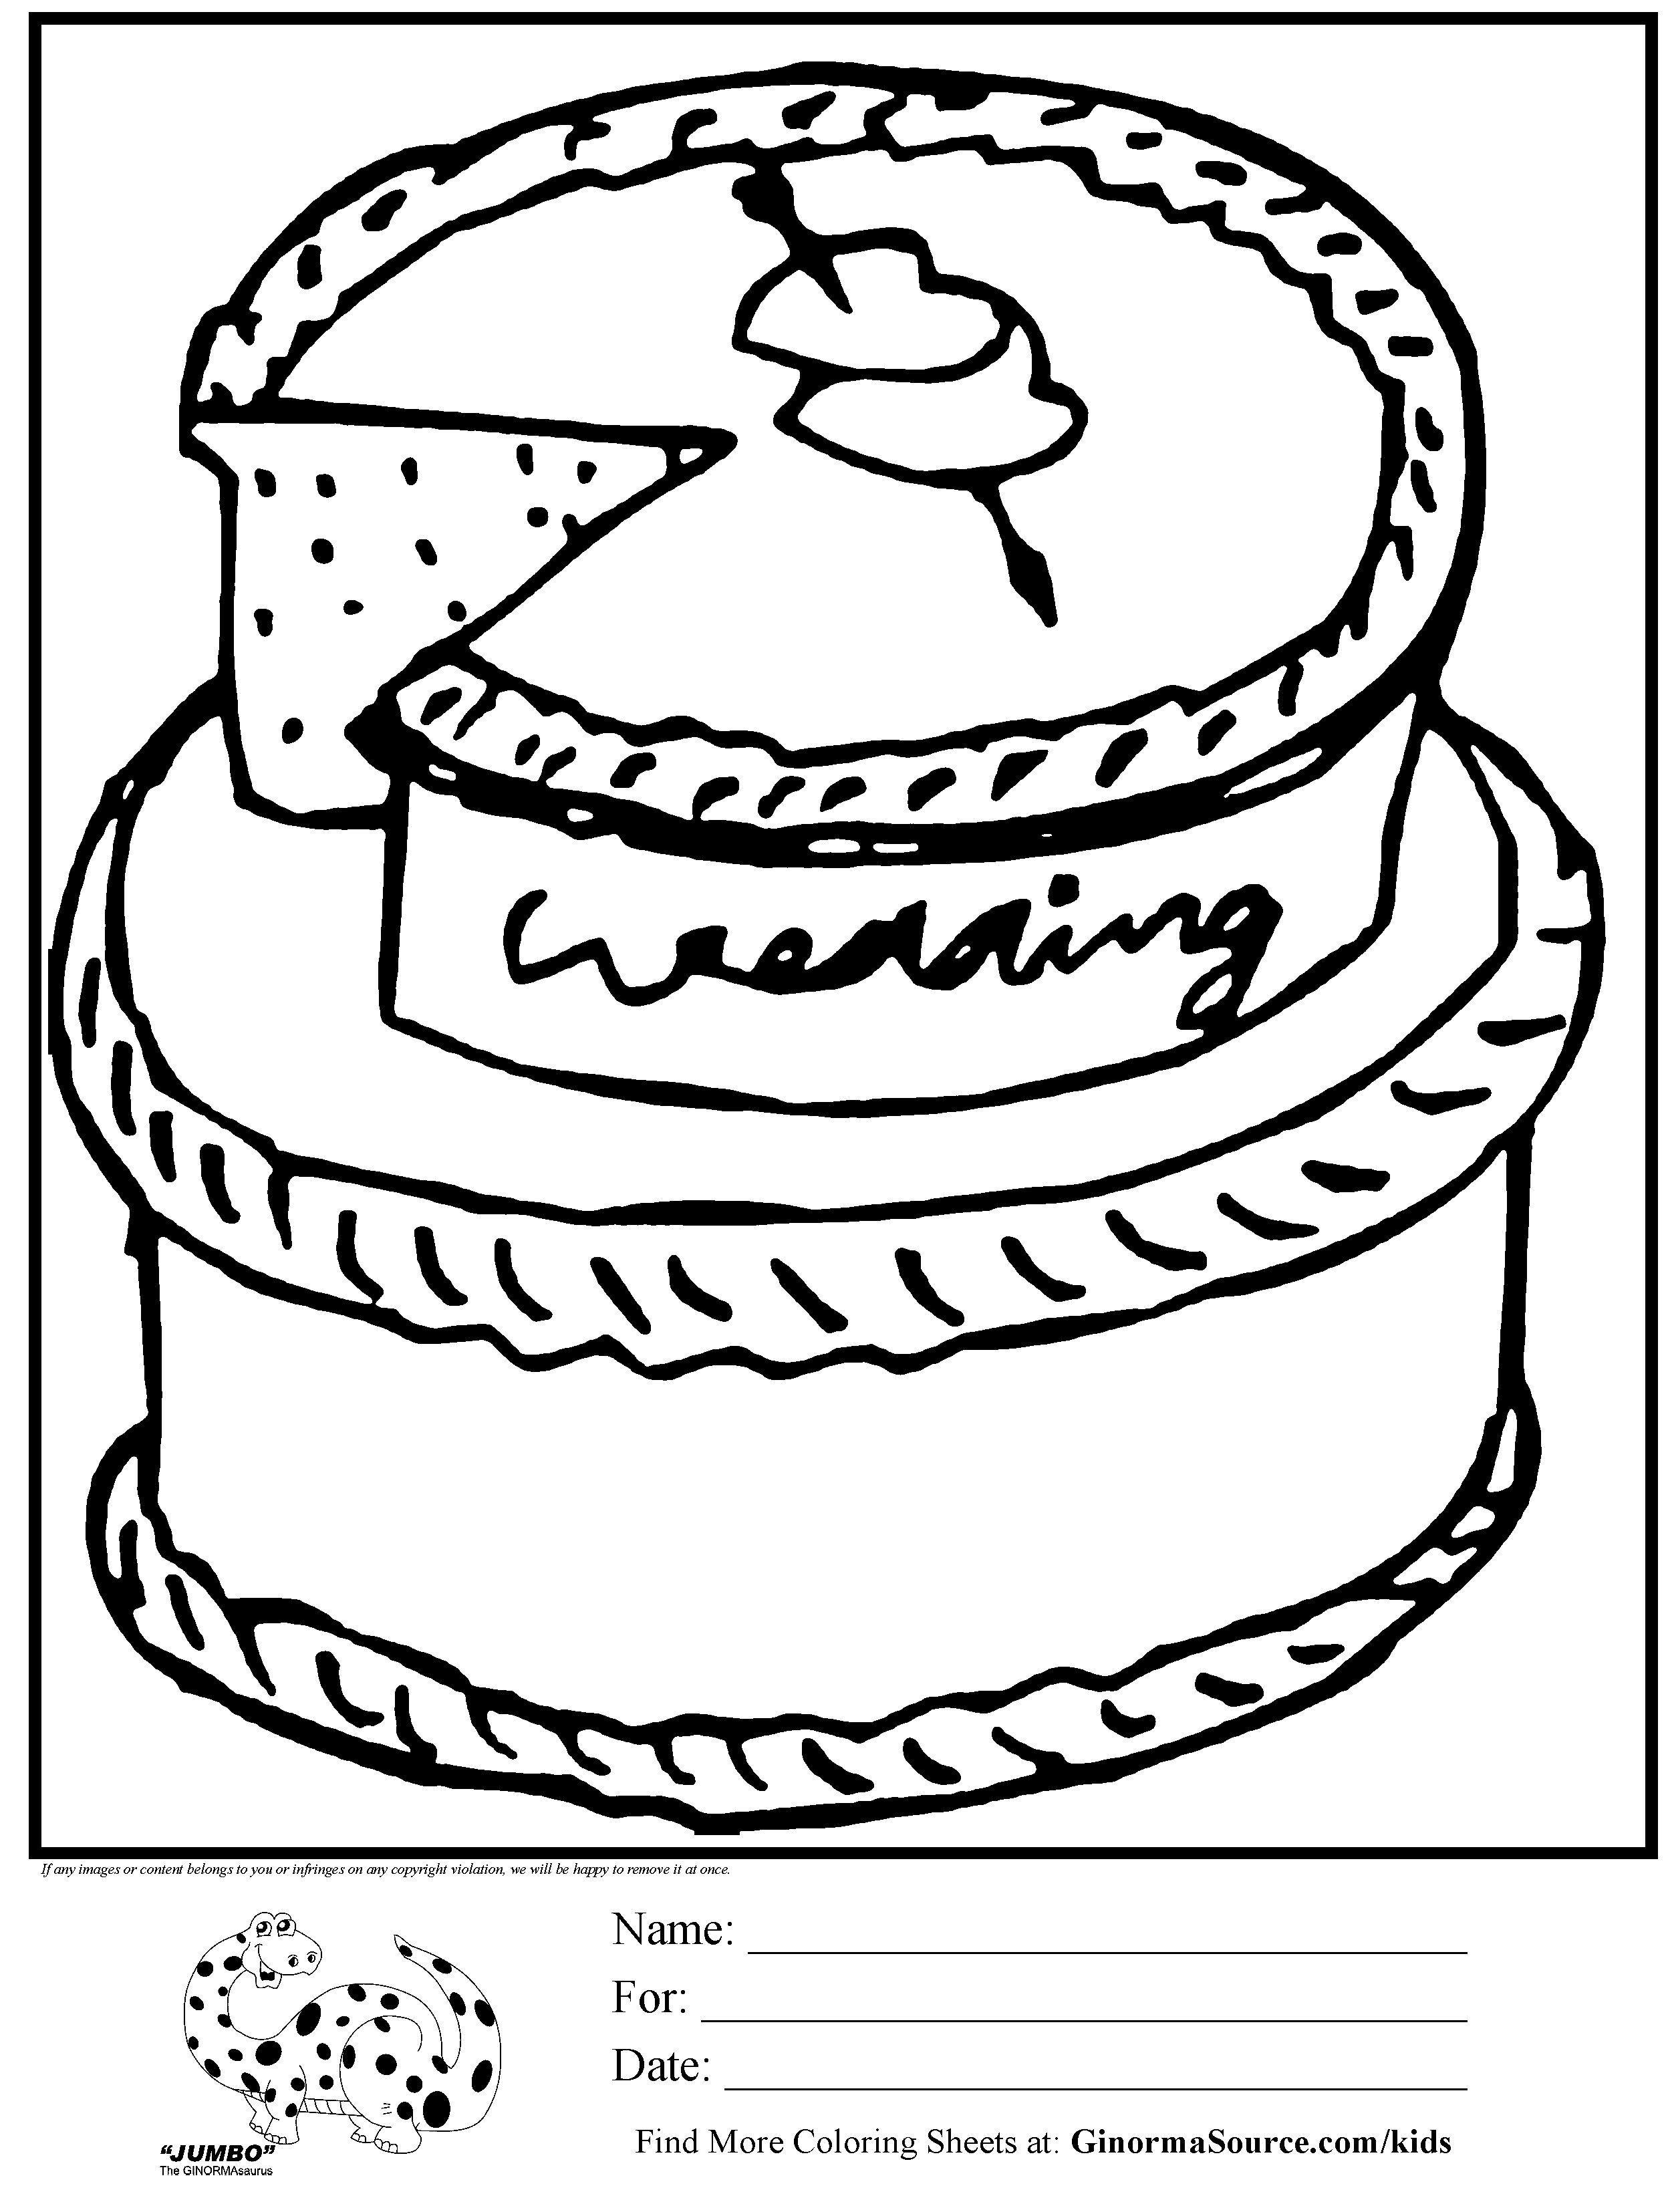 2493x3310 Wedding Cakes View Wedding Cake Coloring Pages Photos Instagram